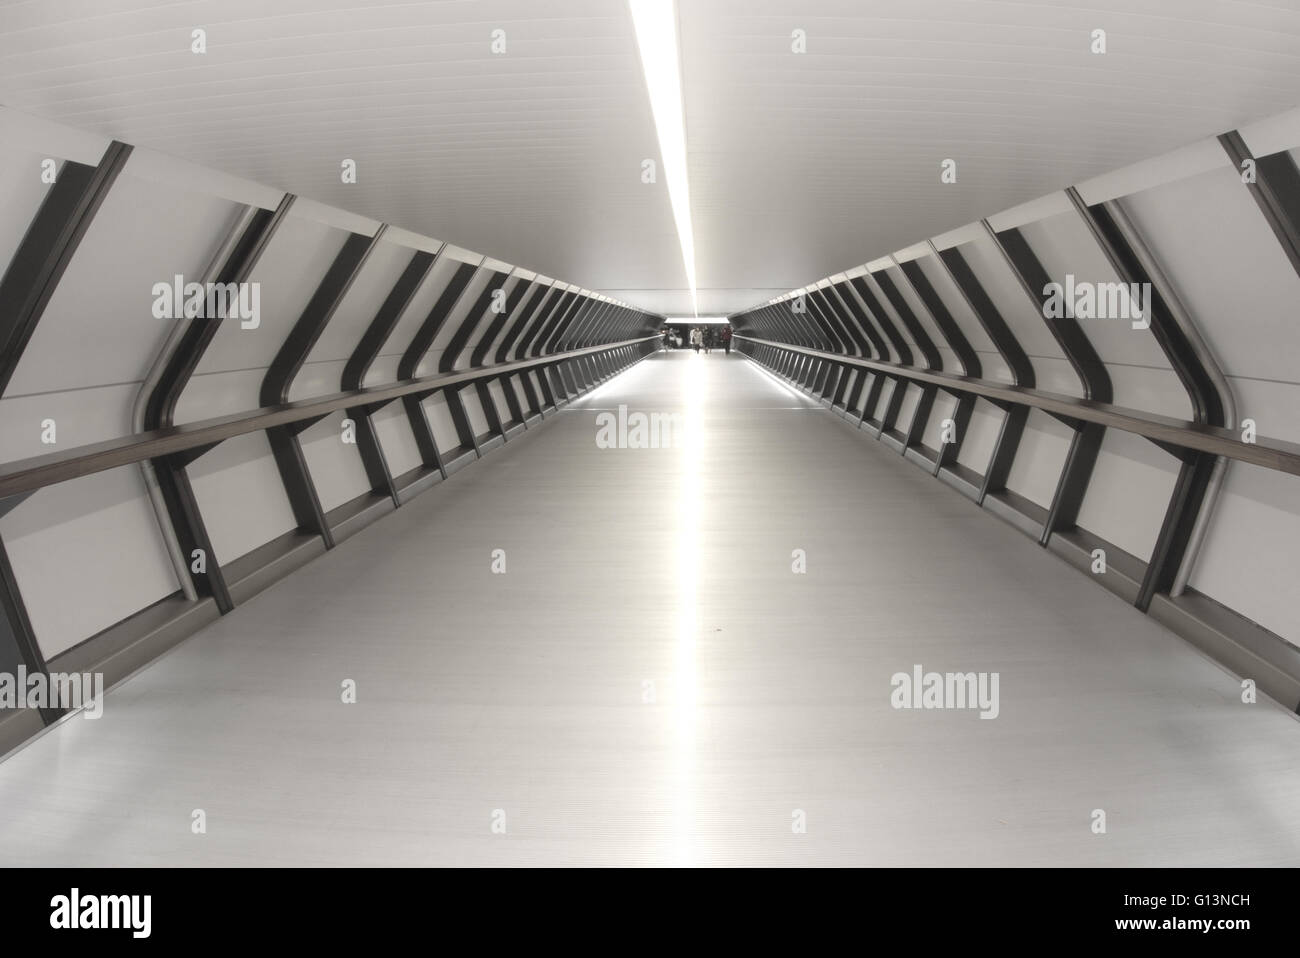 Adams Plaza Bridge tunnel footbridge which connects the Crossrail Place complex with One Canada Square, Canary Wharf, - Stock Image